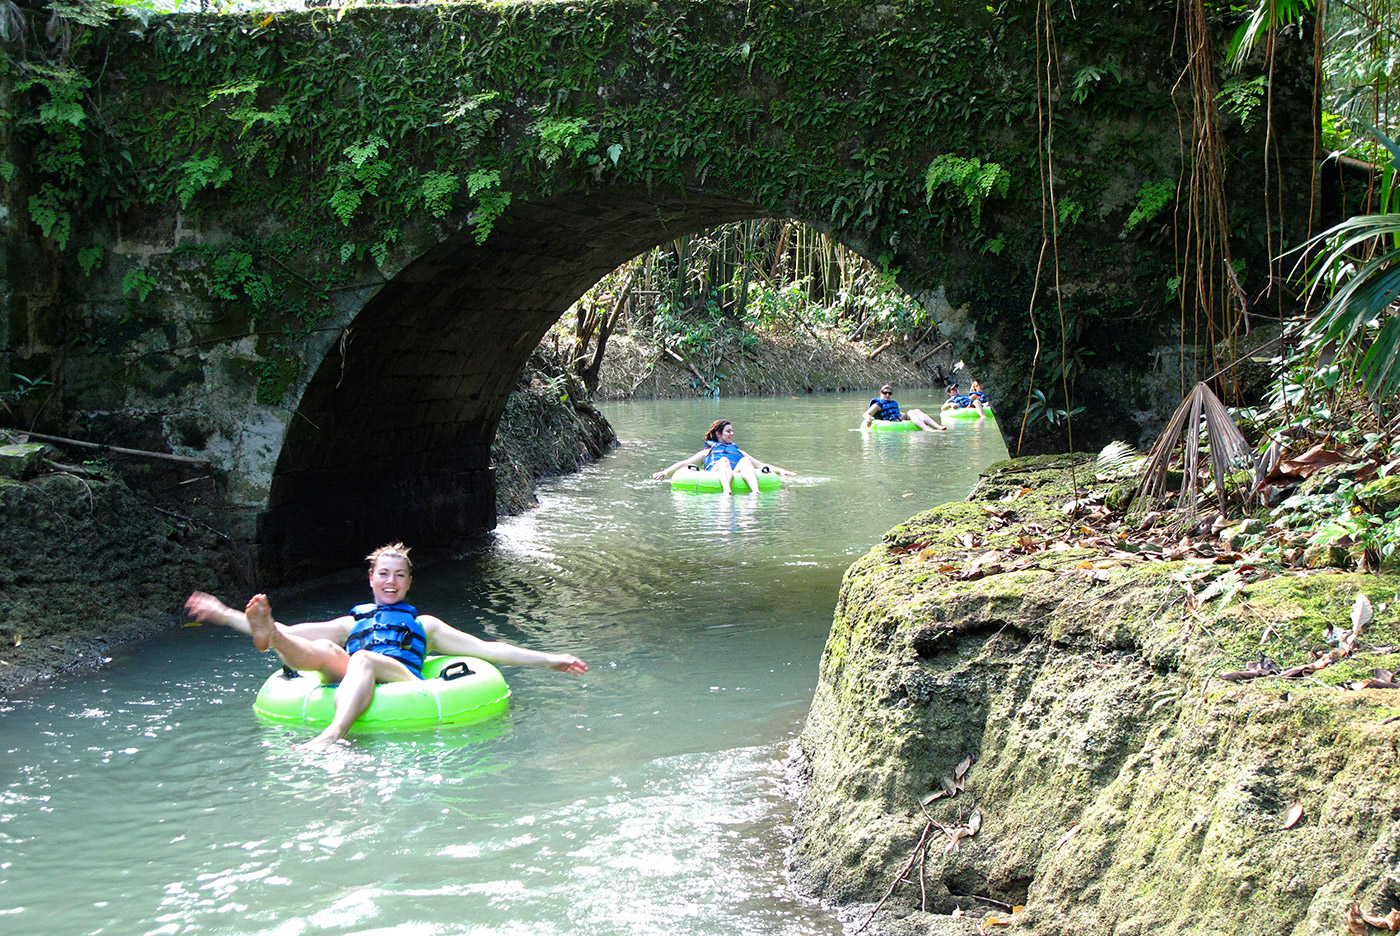 One of the best things to do in Ocho Rios is drift along the quiet white river in an inner tube